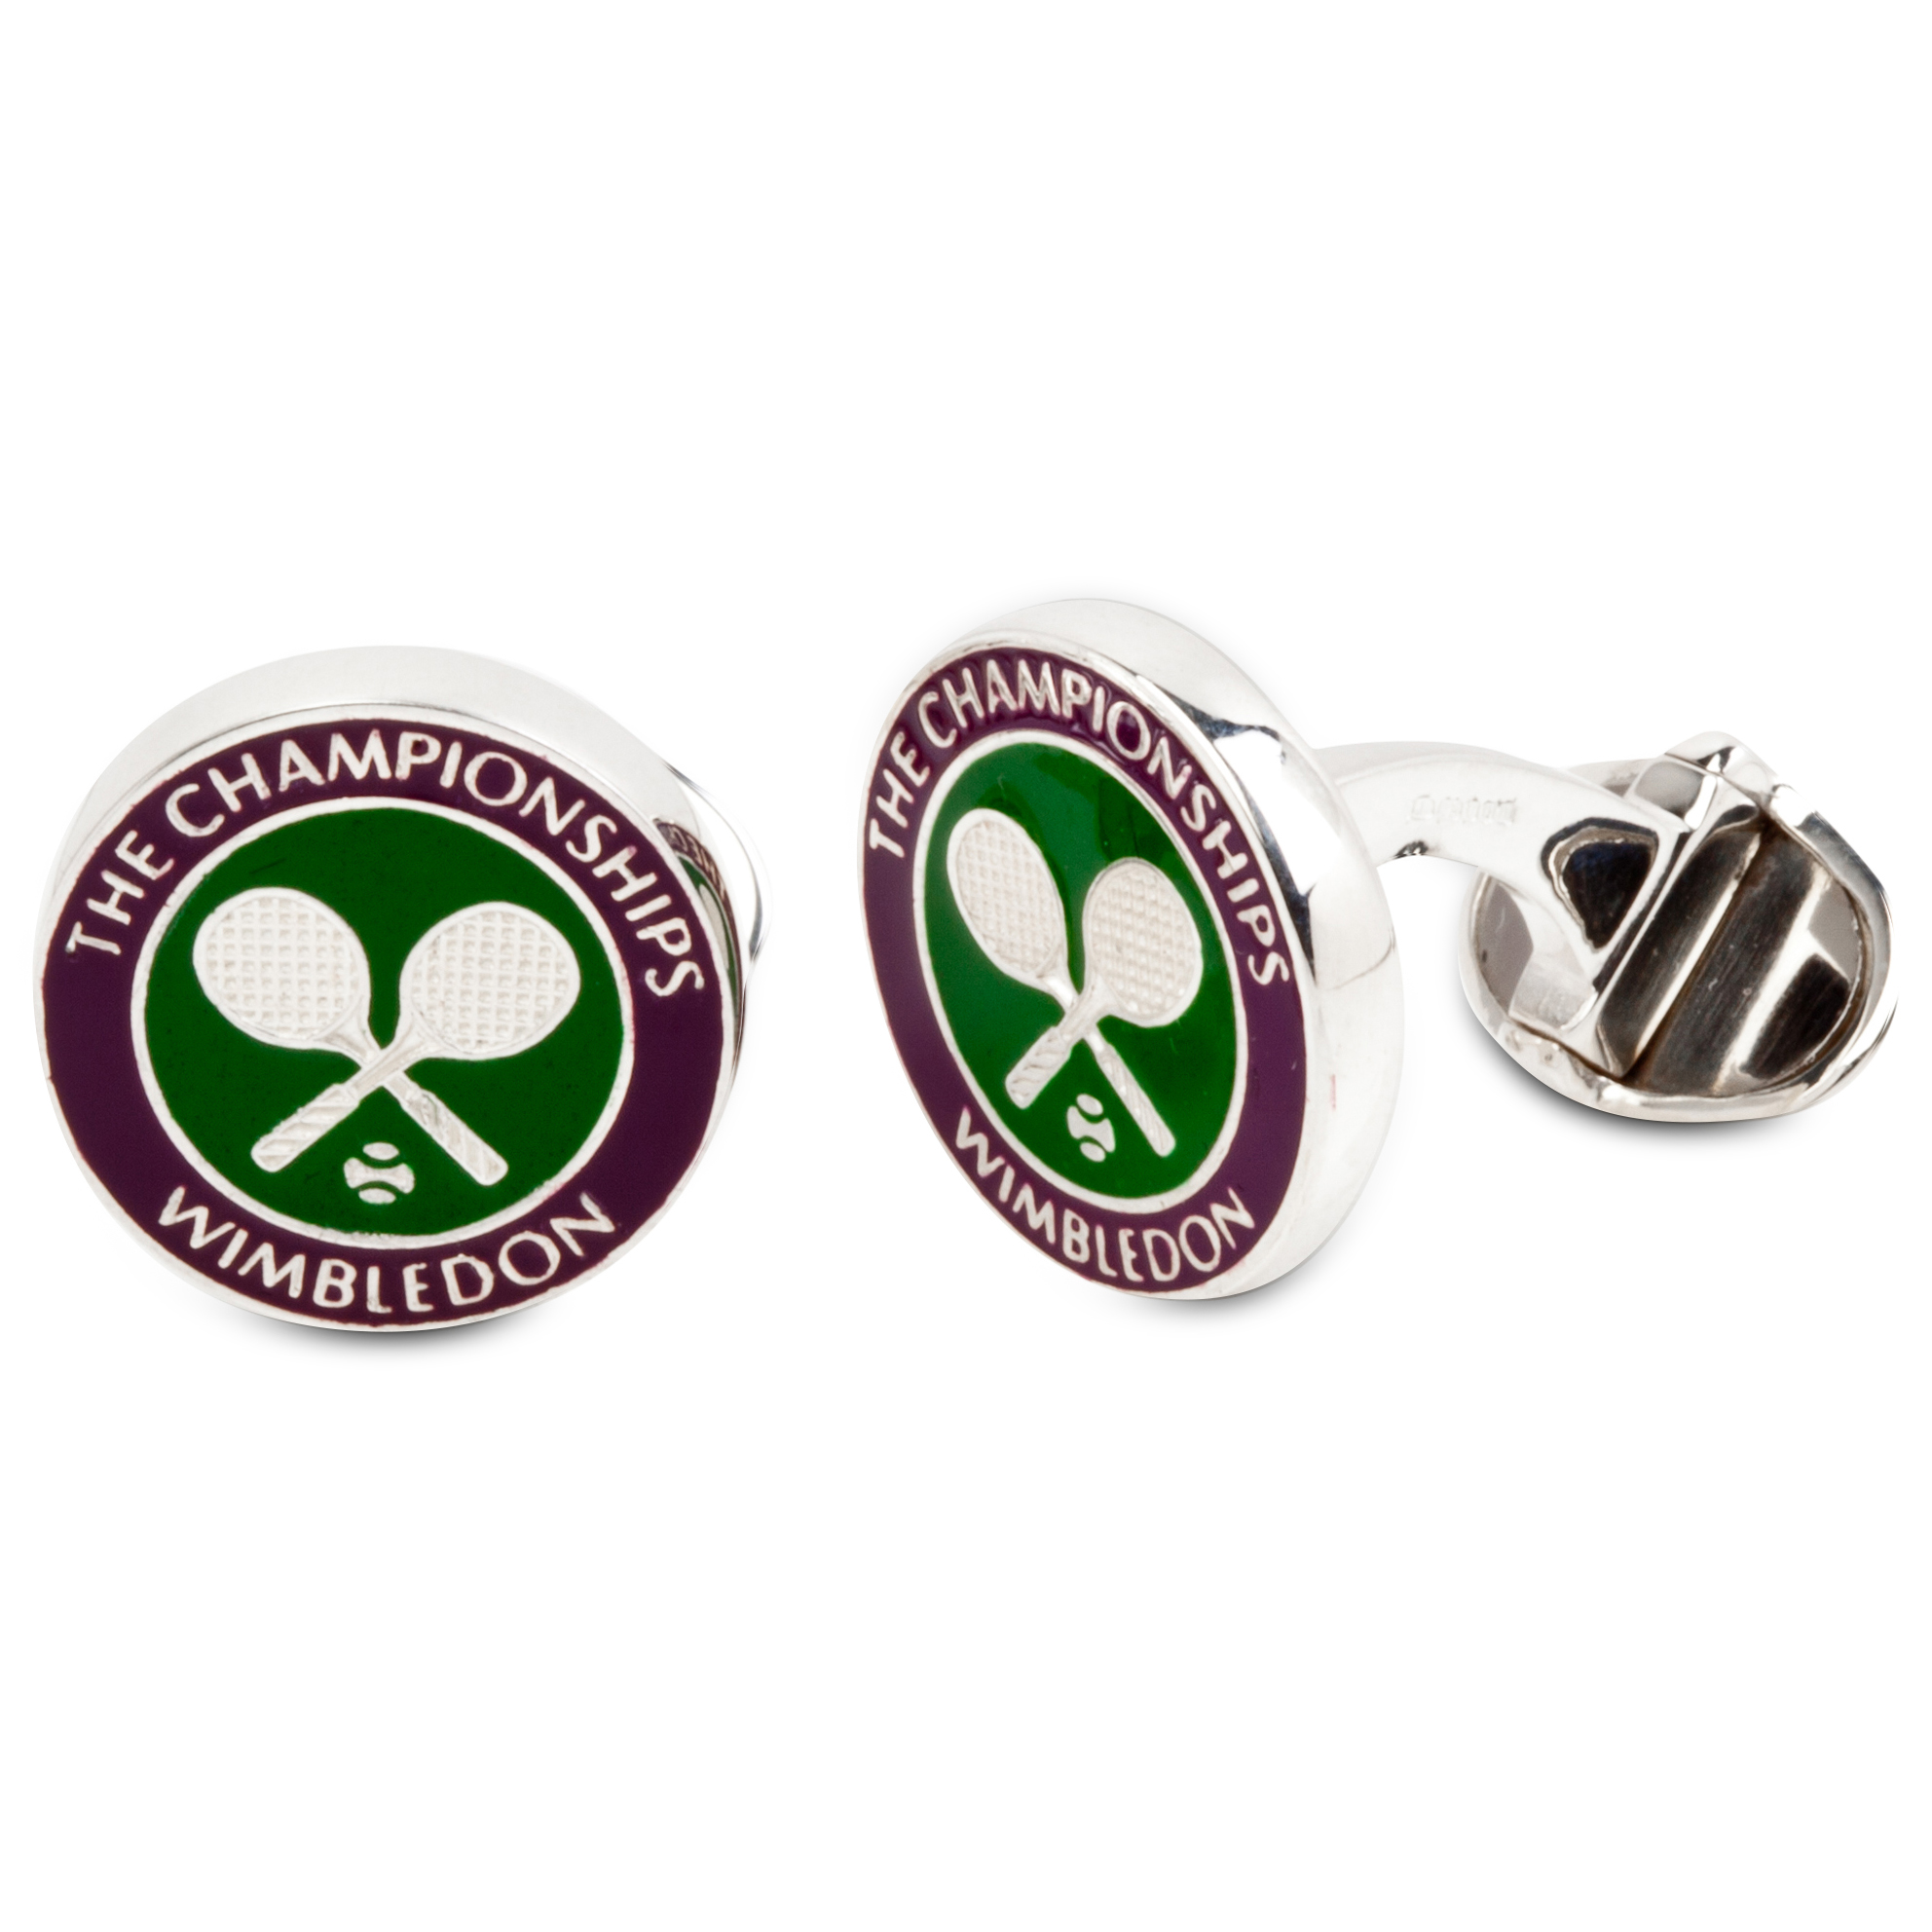 Wimbledon Cross Racket Enamel Cufflinks